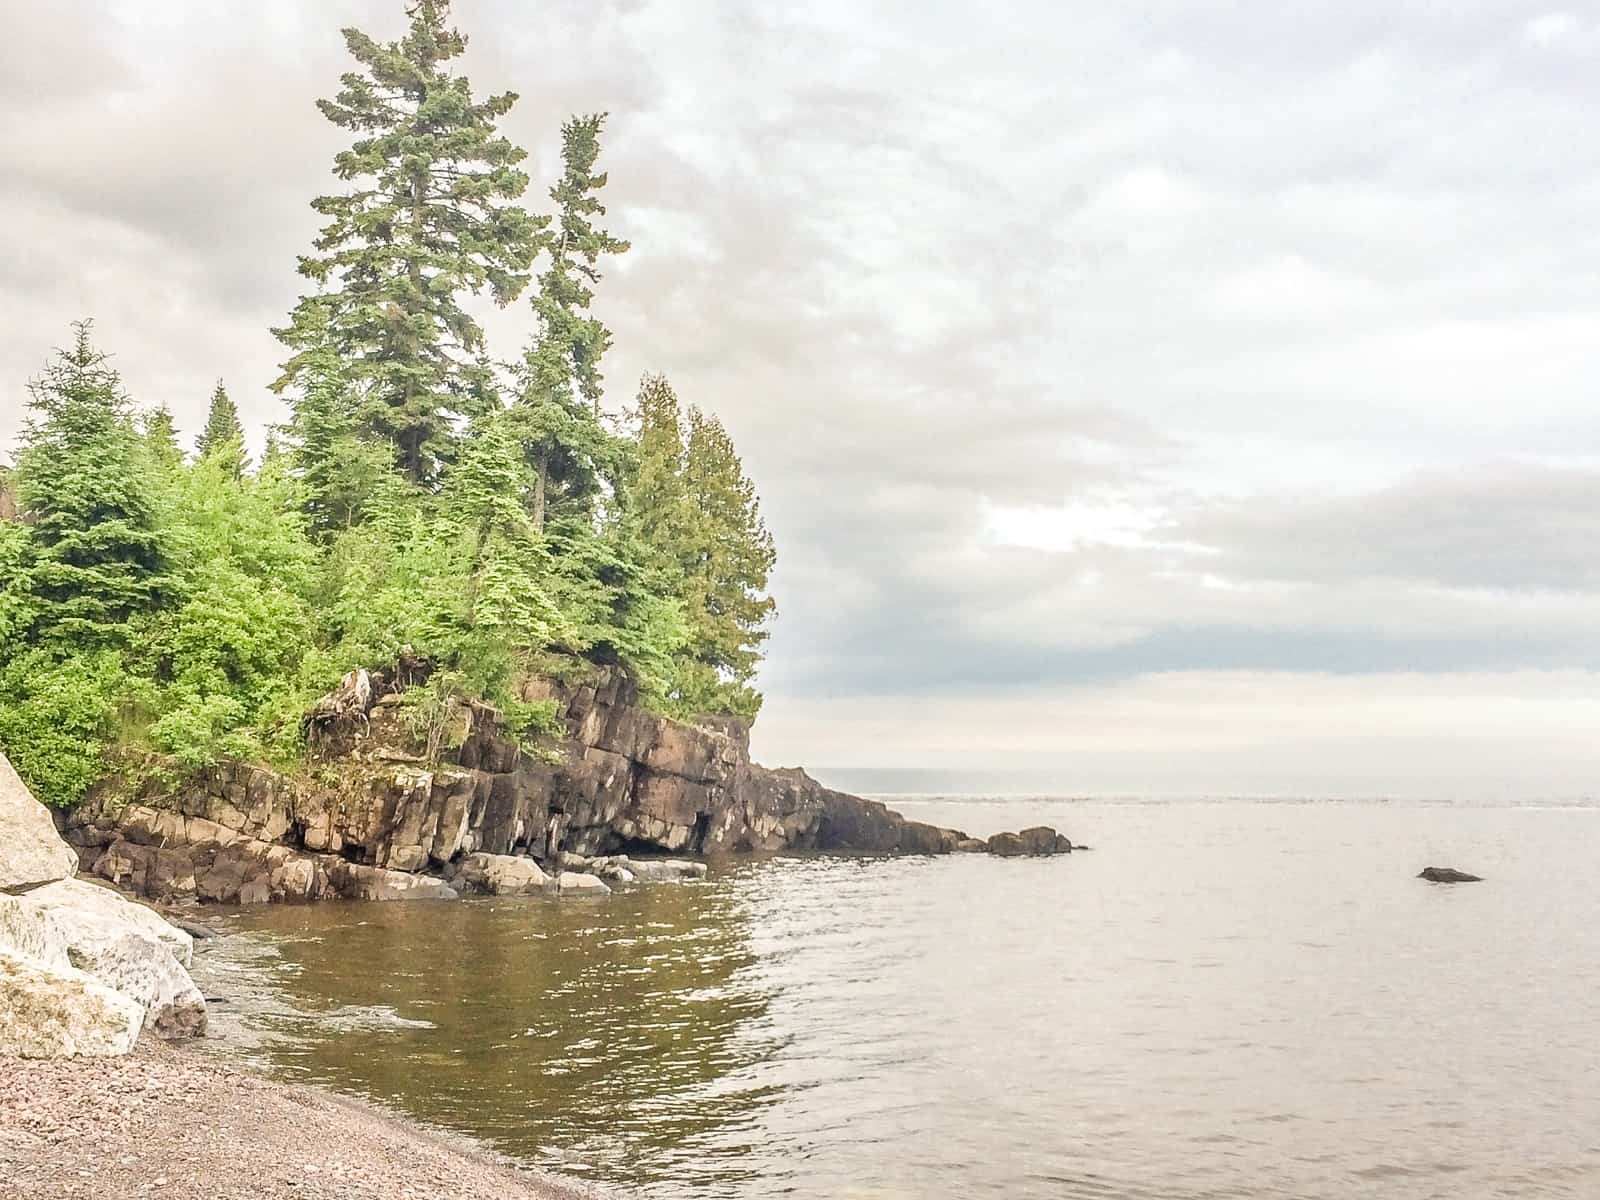 Mouth of the Cascade River and Lake Superior at the Cascade River State Park